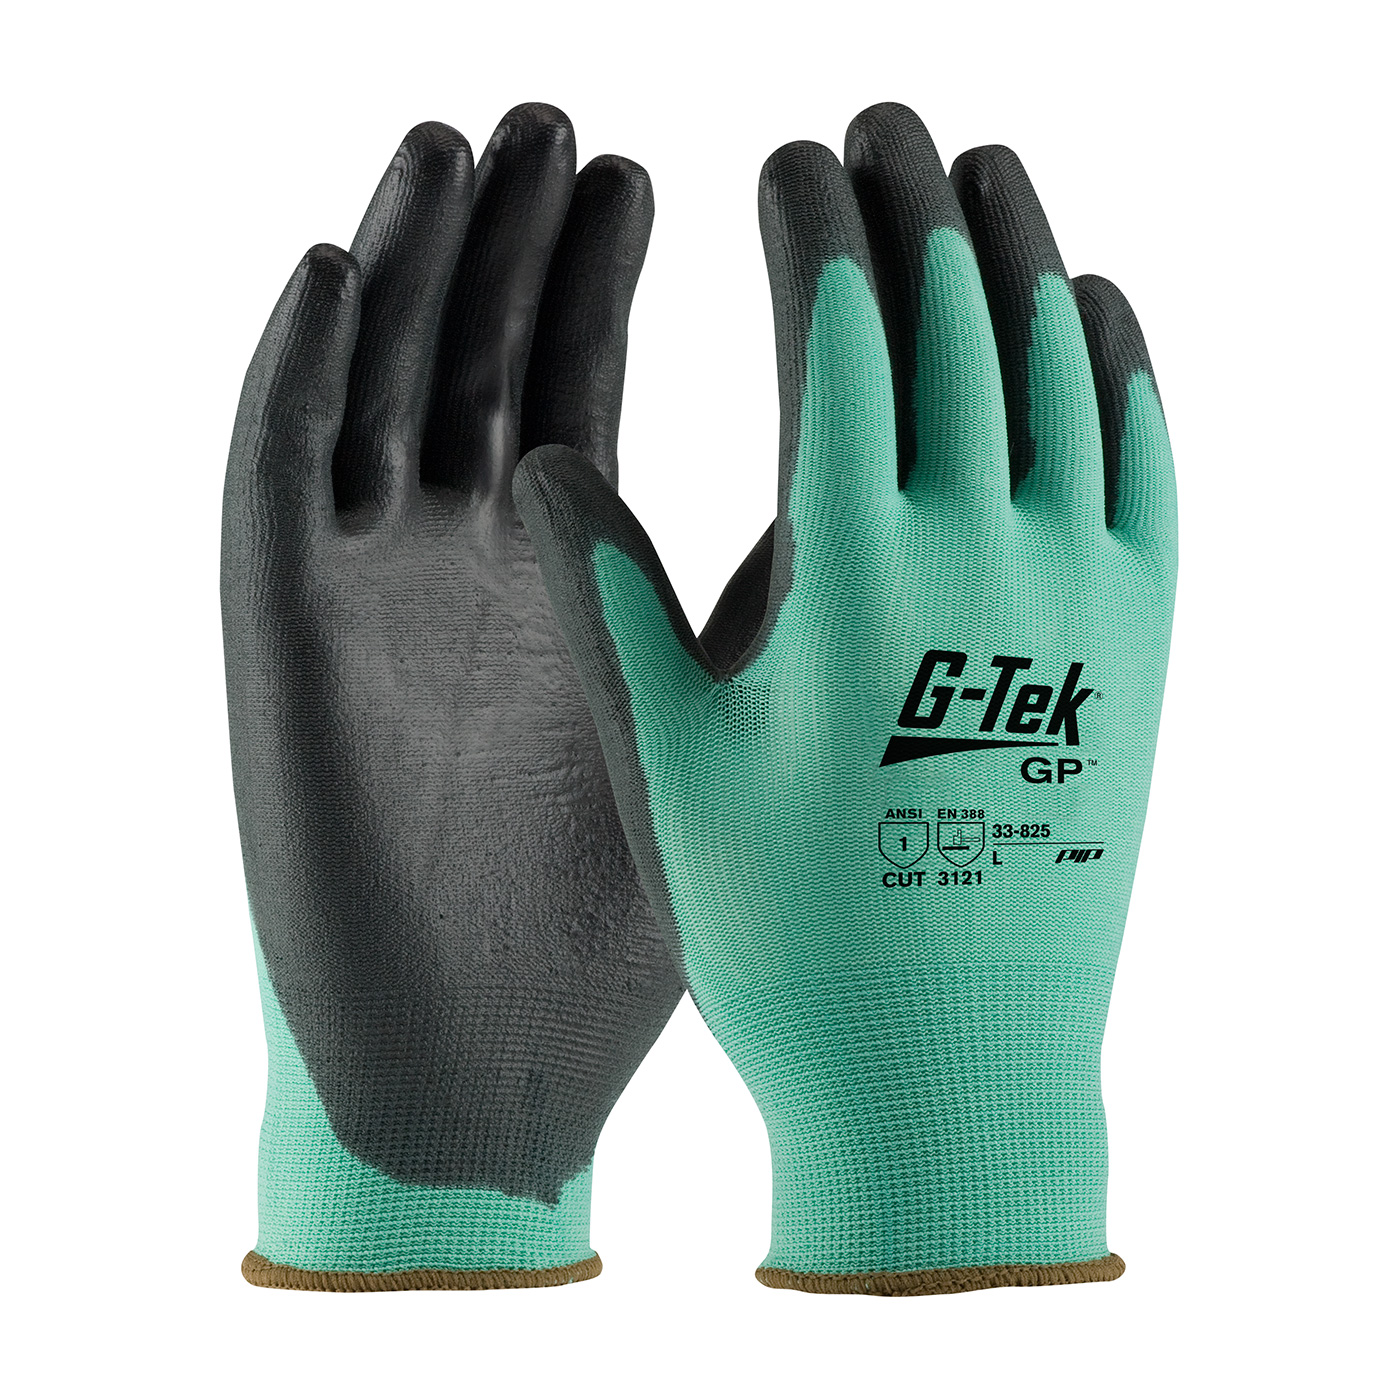 PIP G-Tek® GP™ Seamless Knit Nylon Glove with Polyurethane Coated Smooth Grip on Palm & Fingers #33-825